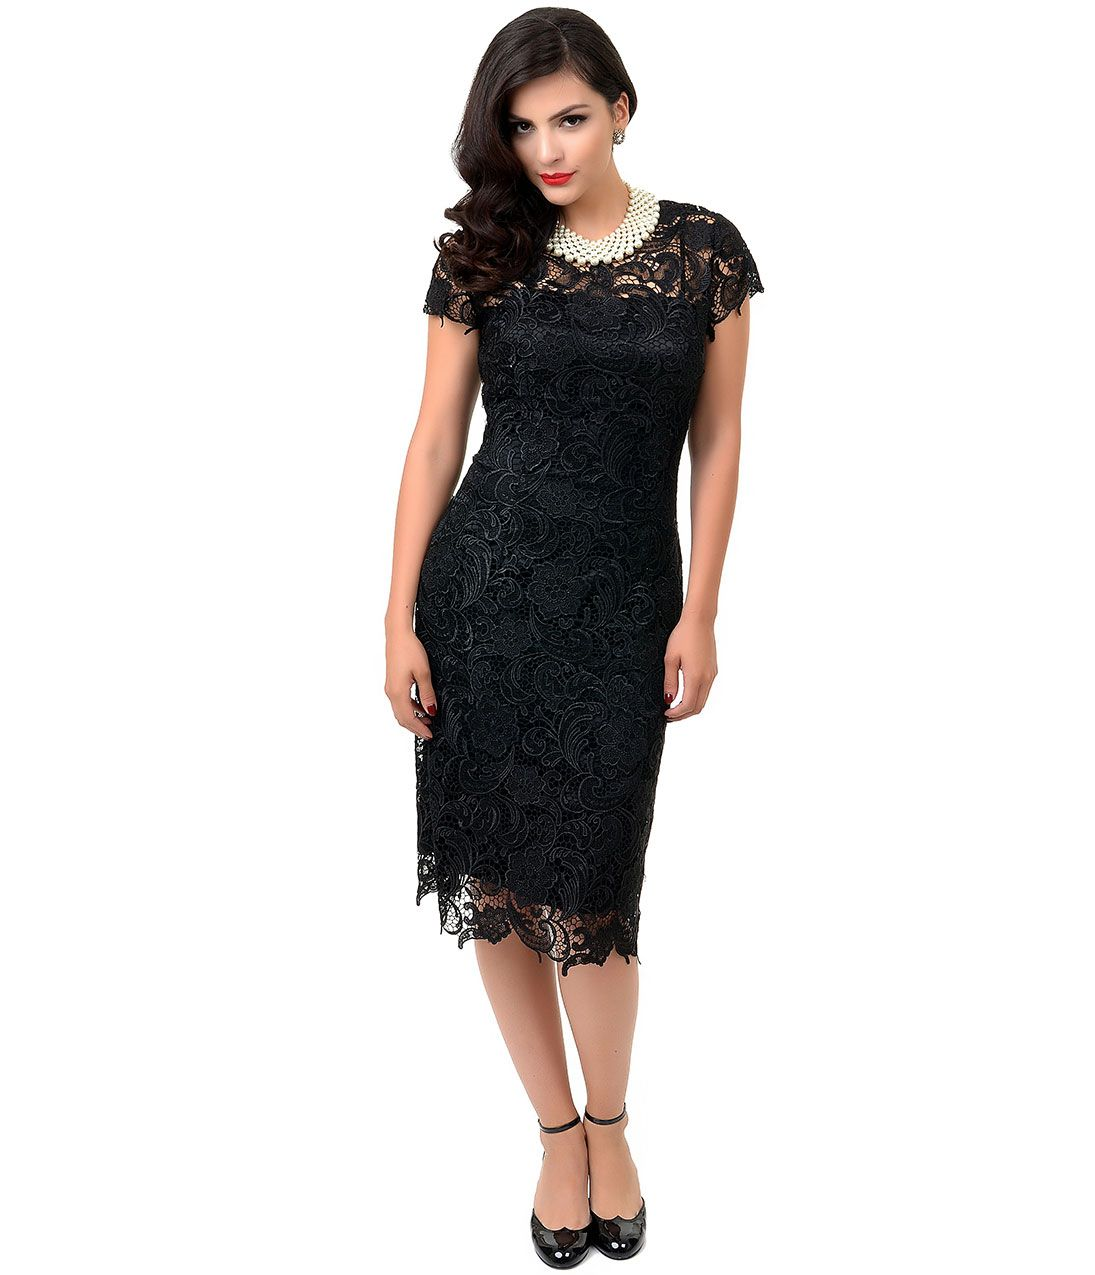 S style black cap sleeve embroidered lace cocktail dress party